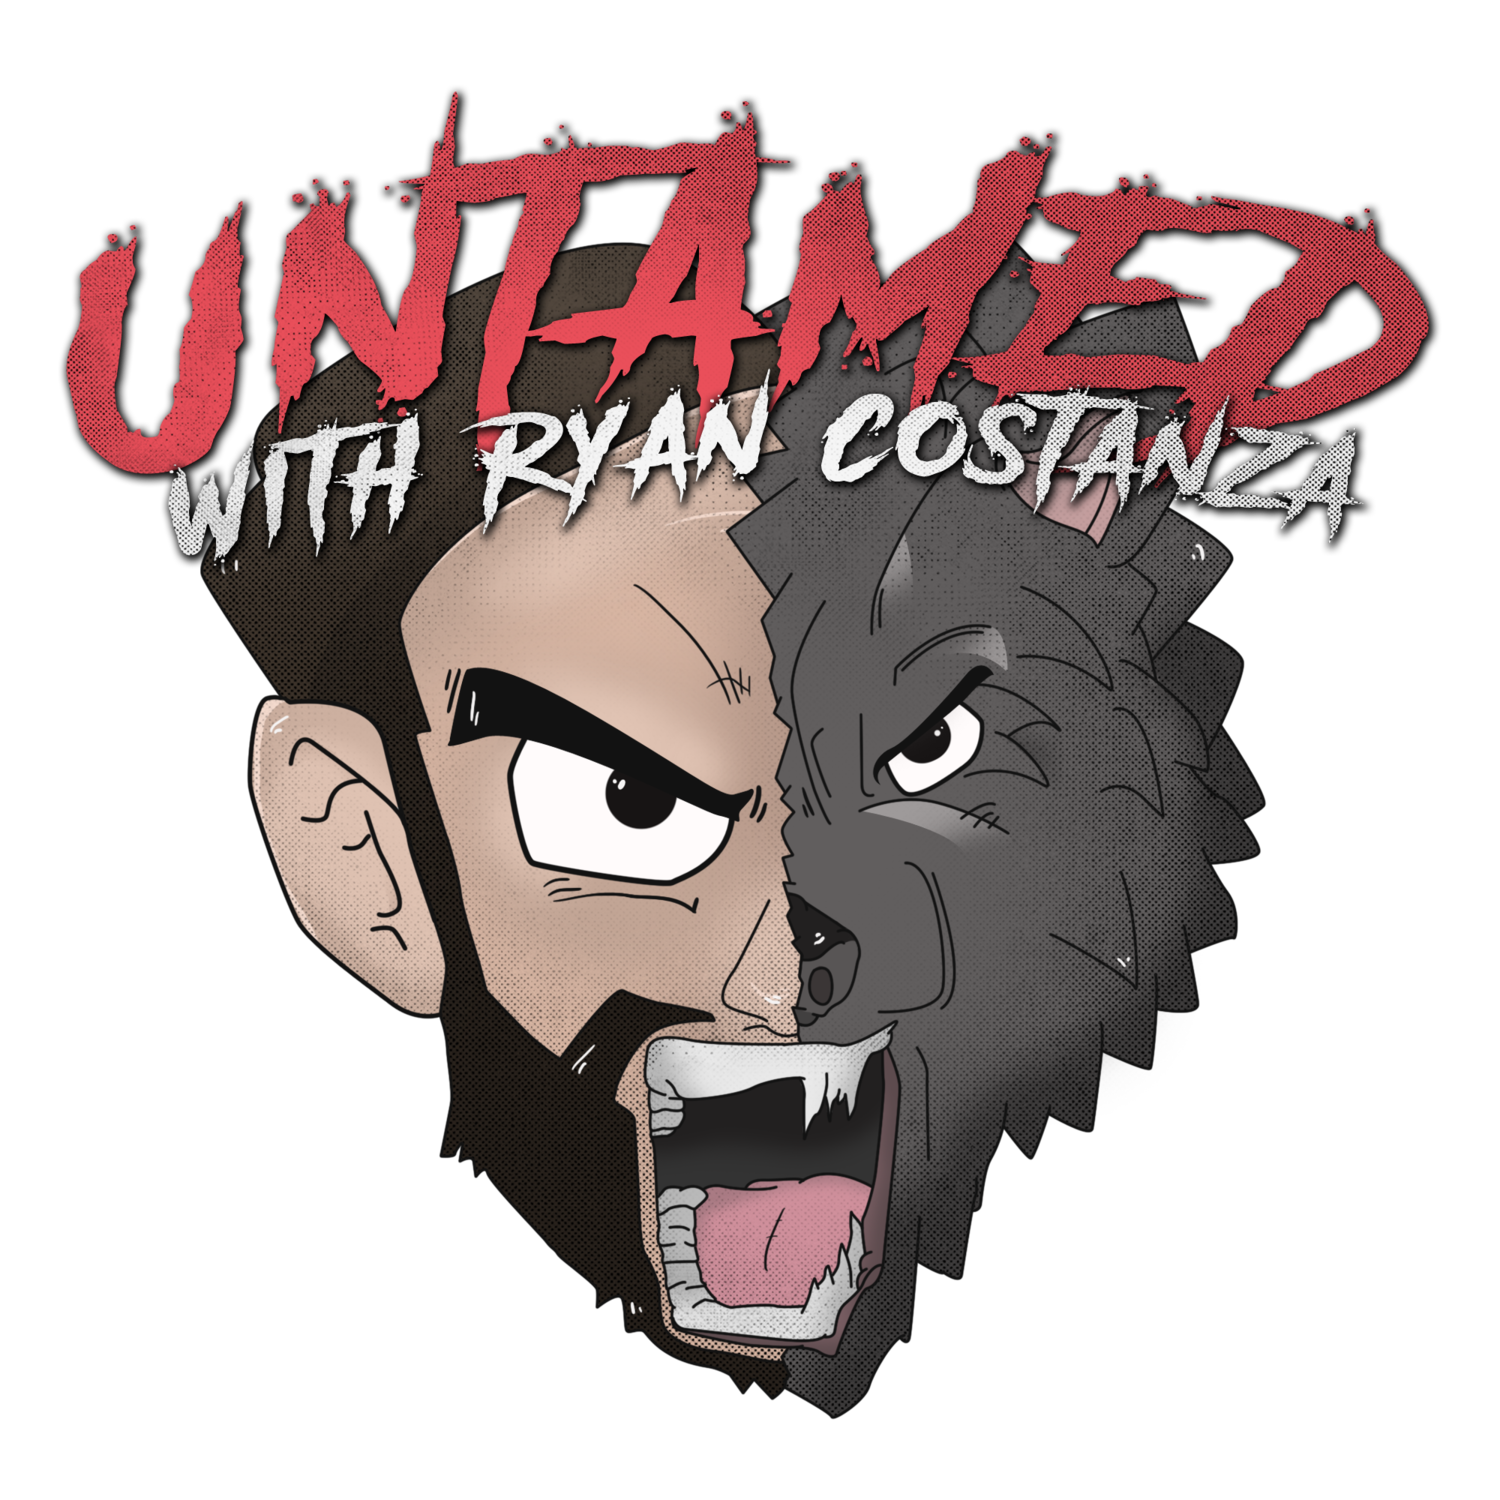 Untamed with Ryan Costanza